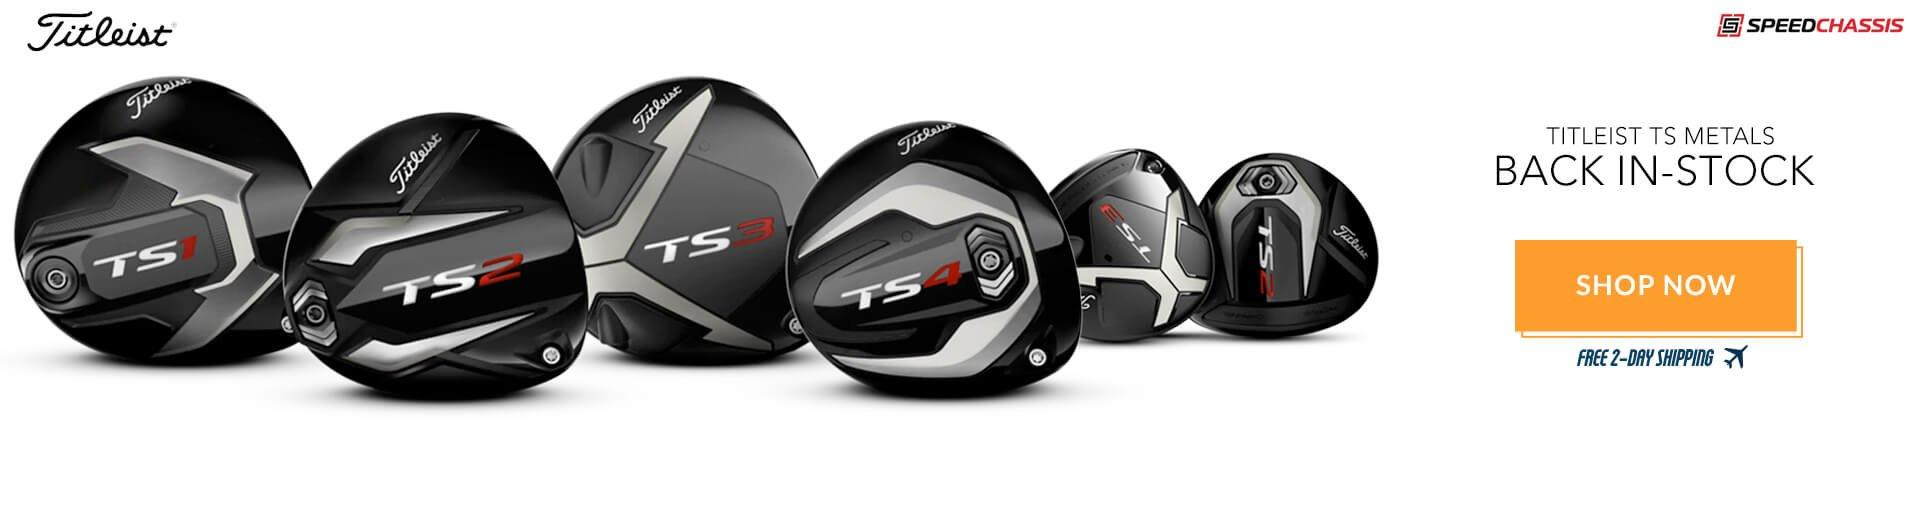 Titleist TS Metals - Back In-Stock